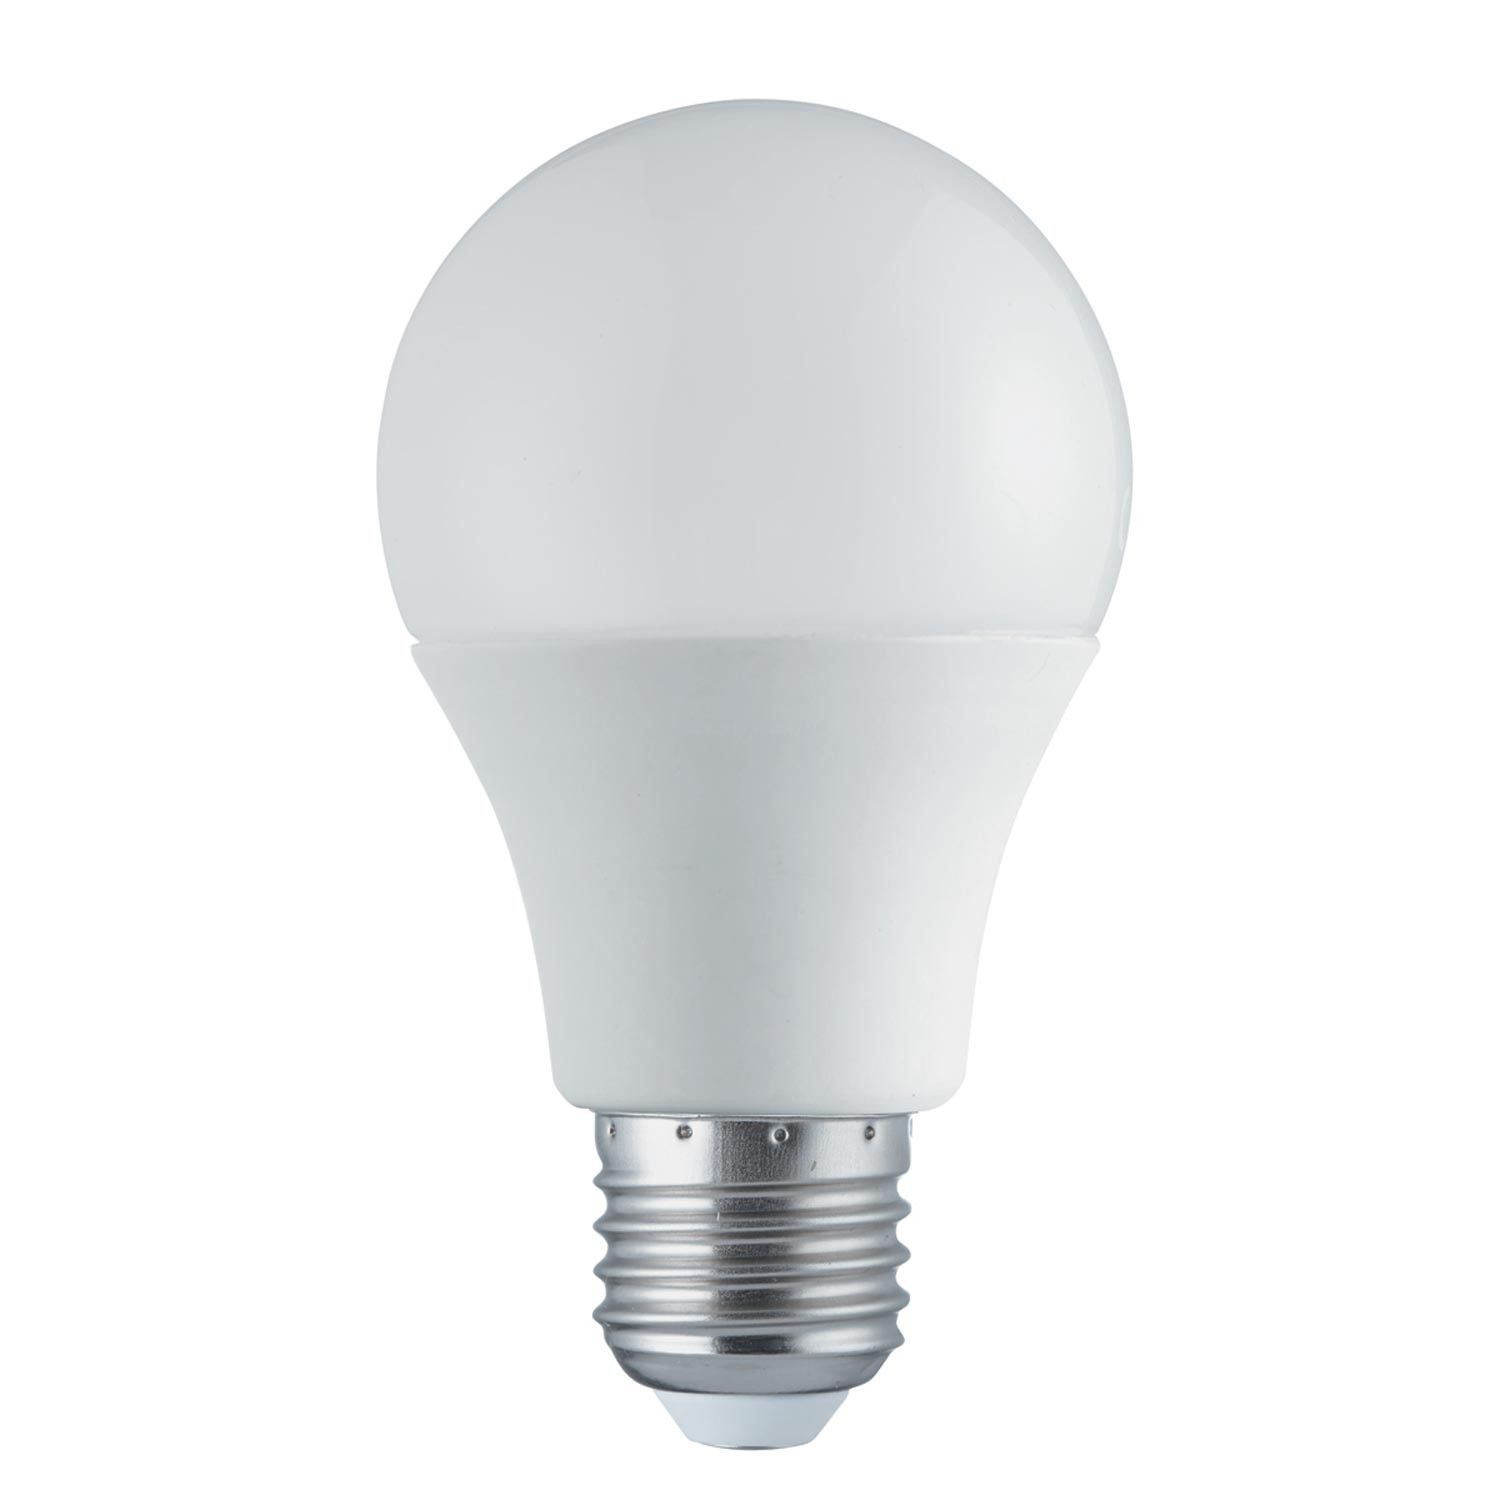 10w Led E27 Bulb 800 Lumens, Cool White